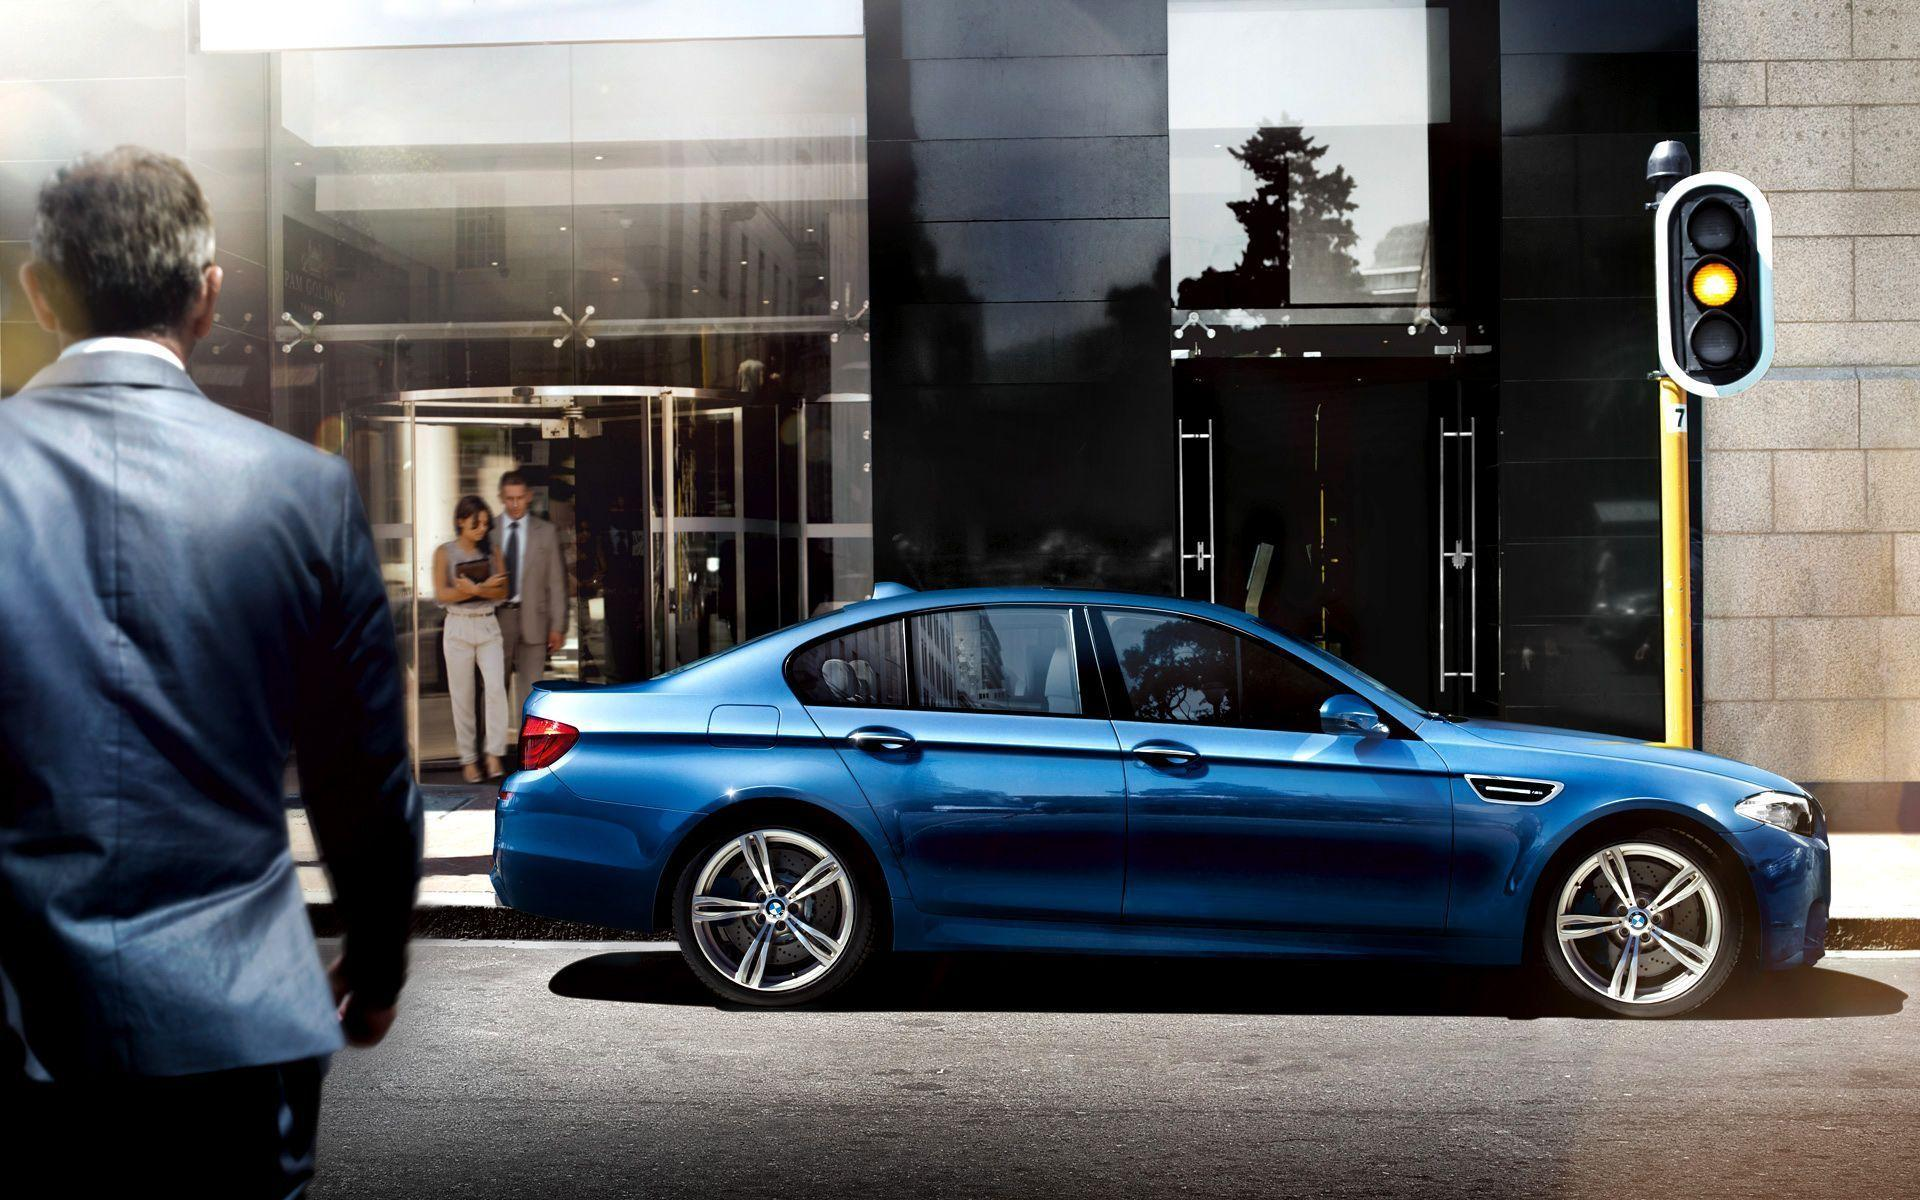 Wallpapers For > Bmw F10 M5 Wallpapers